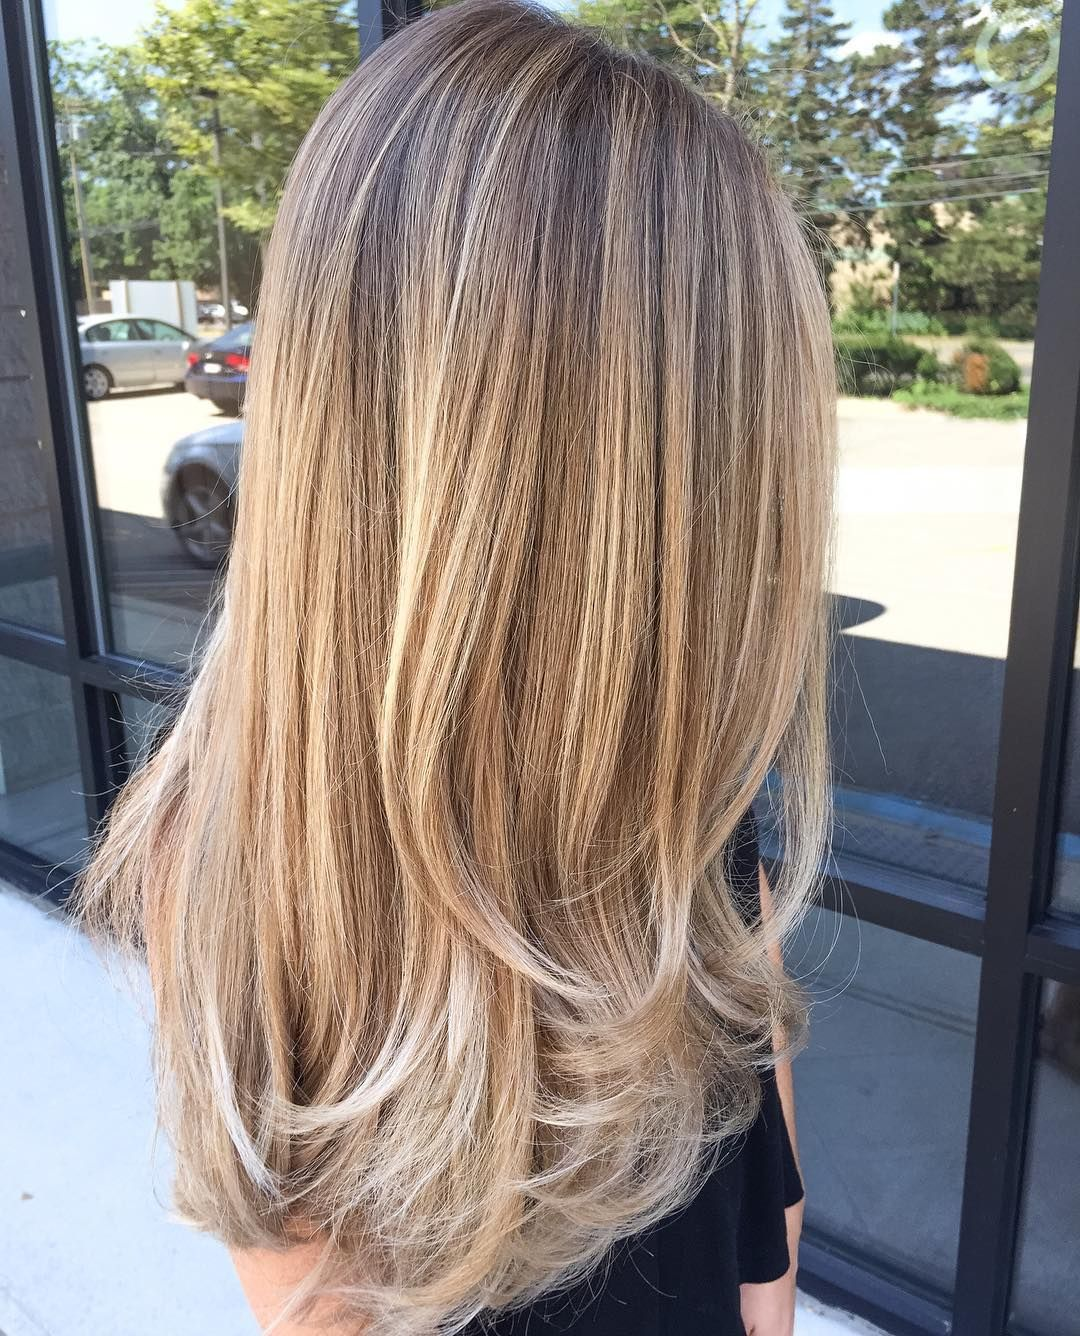 Long bronde hair with goldenblonde balayage and chunky short layers